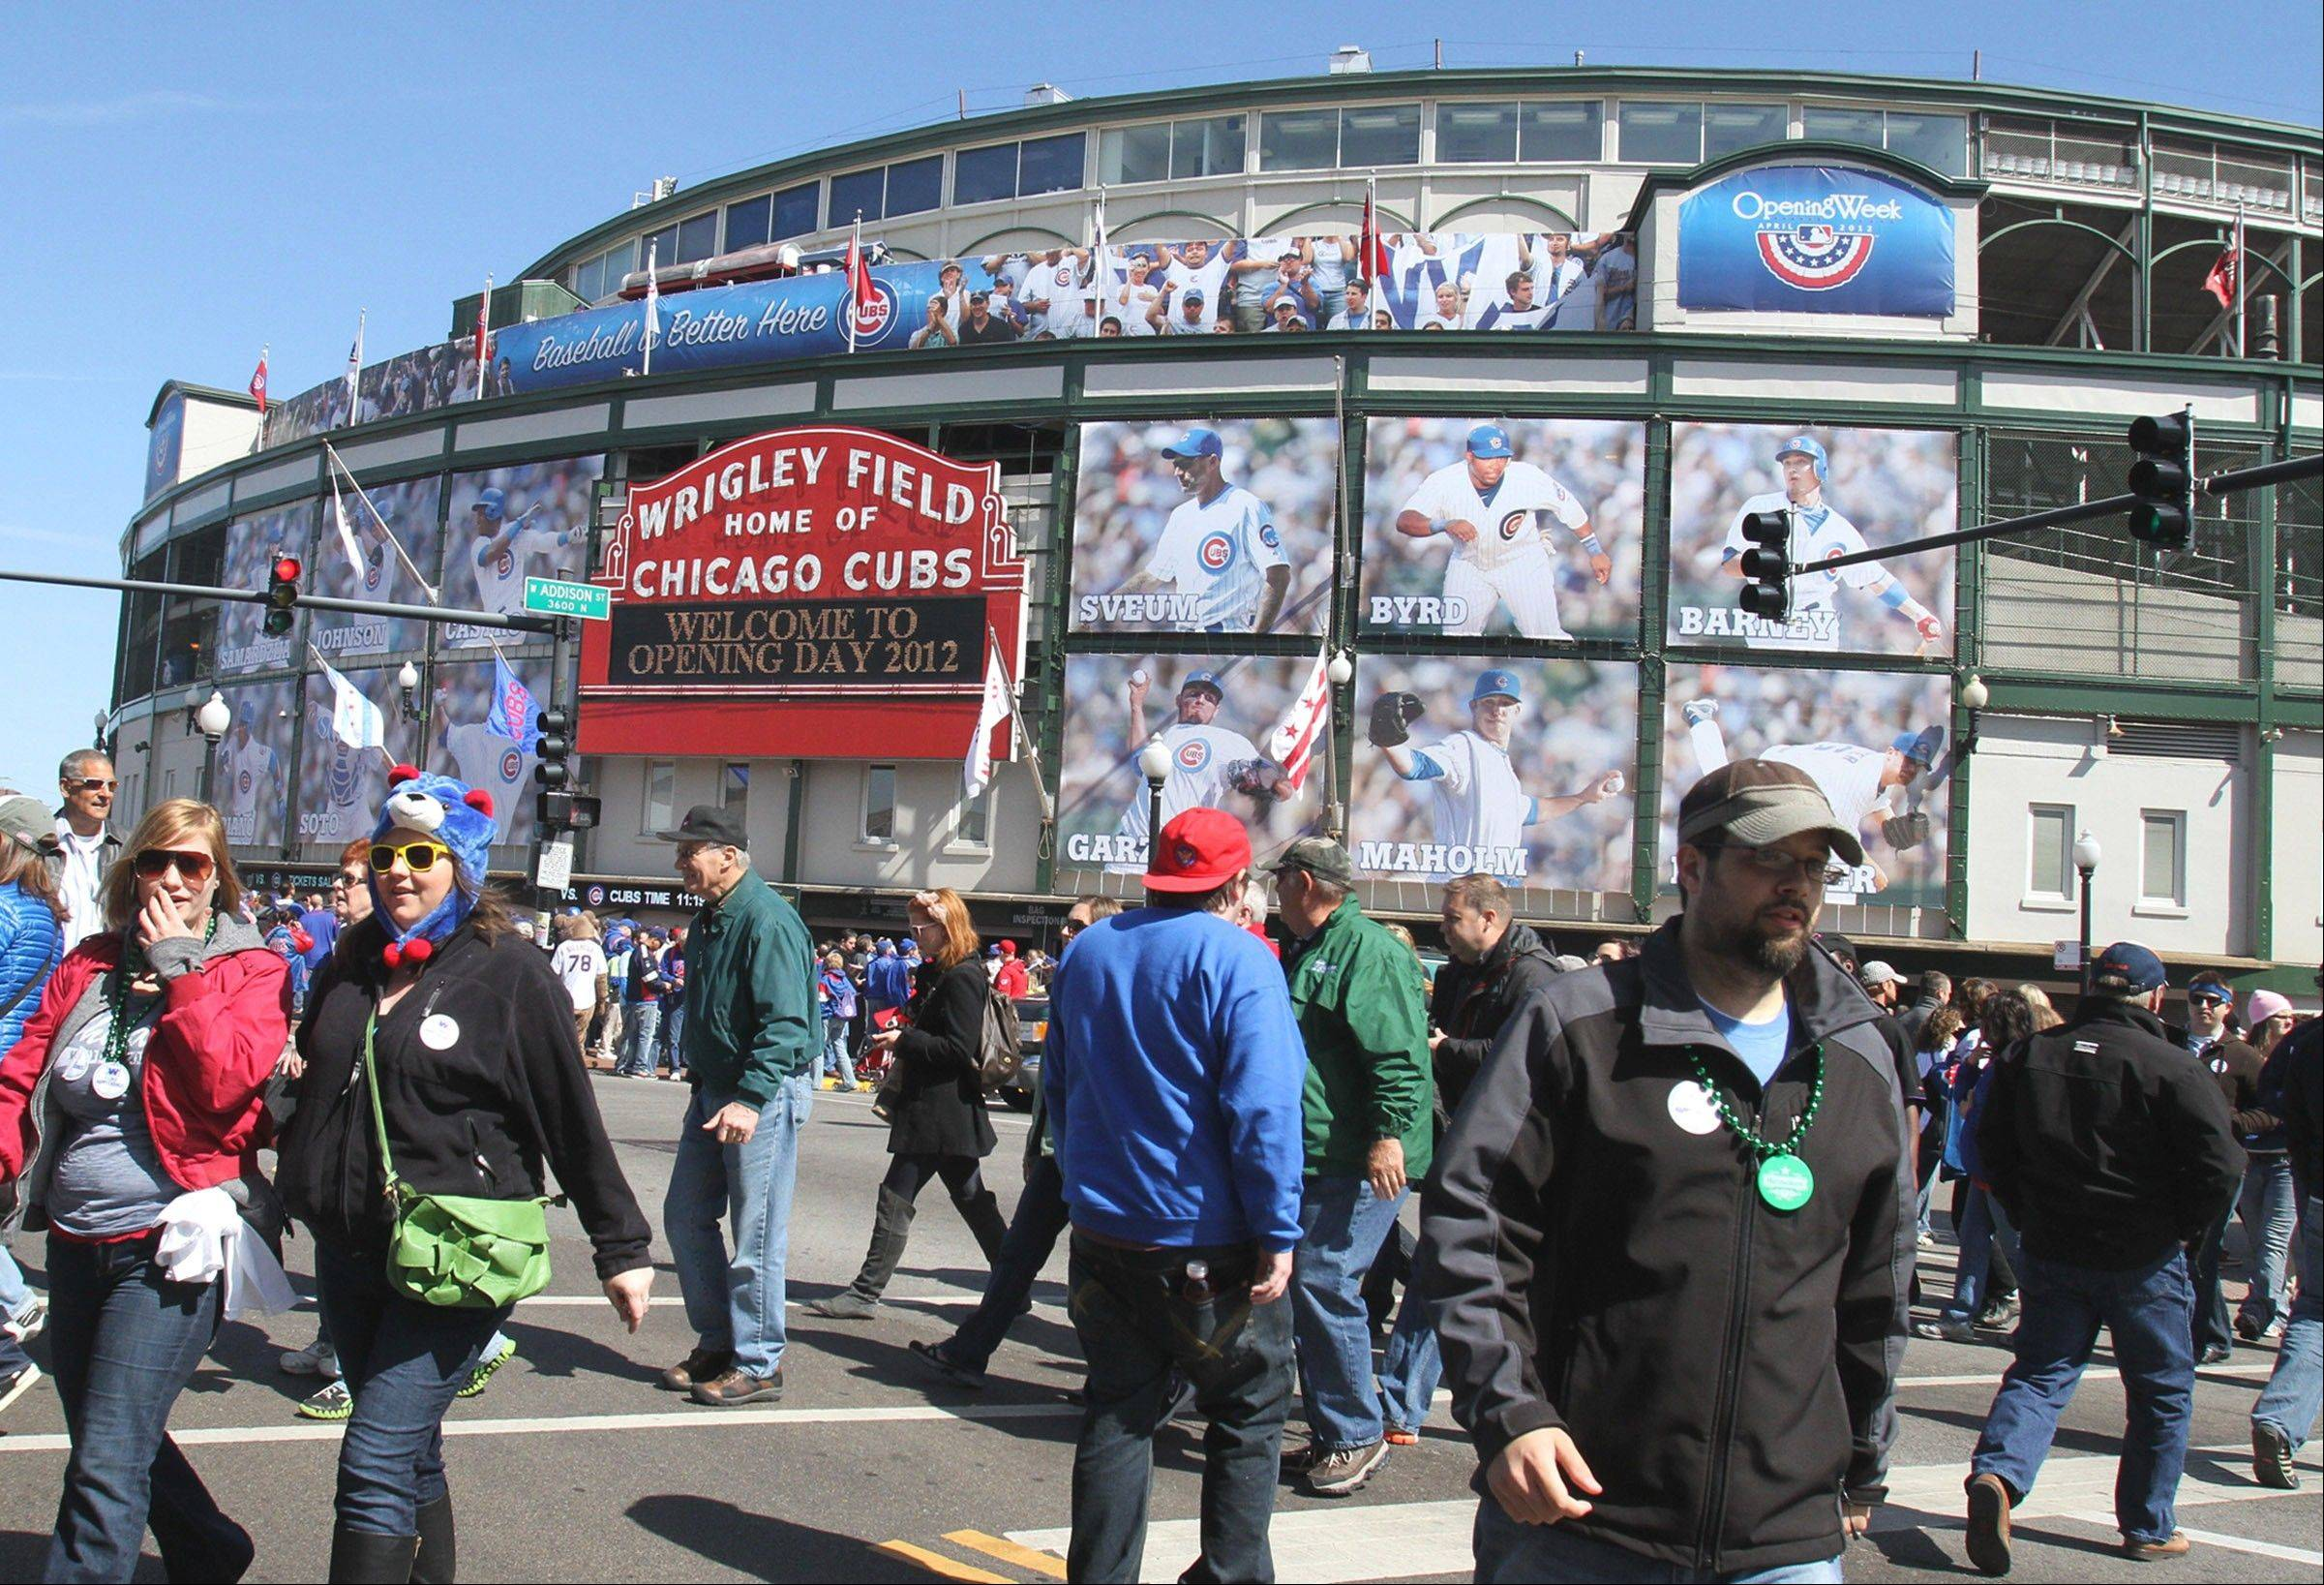 After drawing fewer fans this past season, the Cubs have decided to lower season ticket prices for next year.